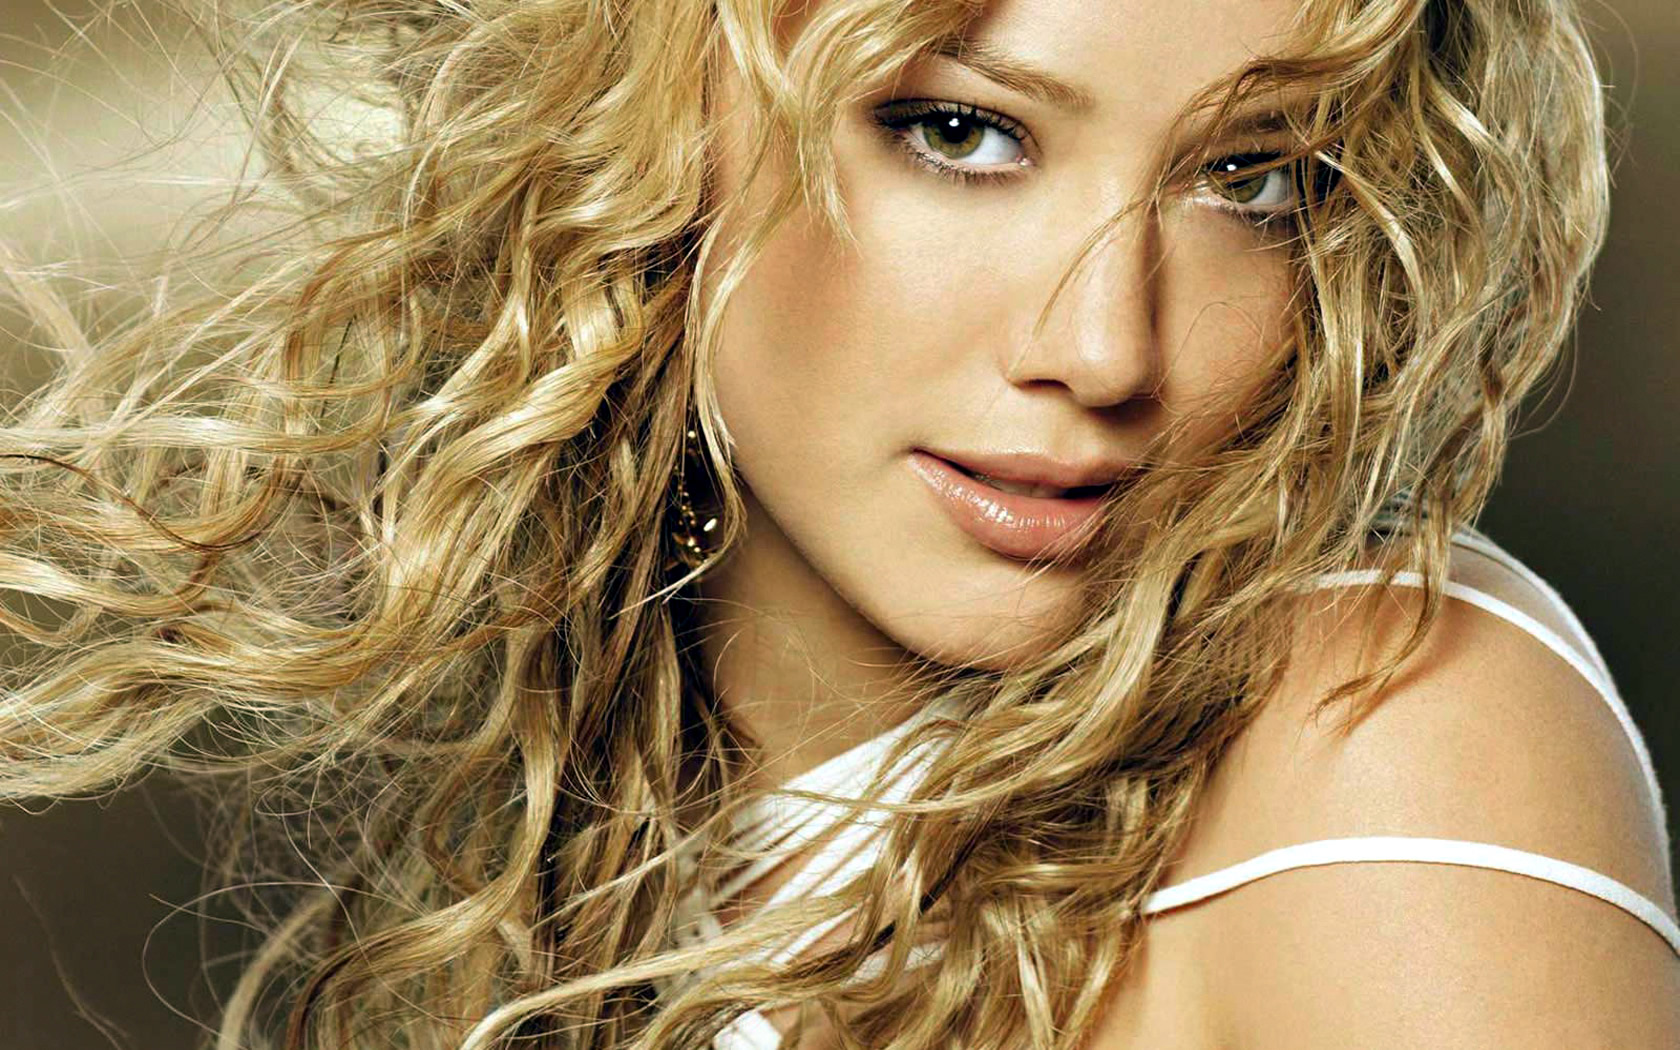 amazing hilary duff cute attractive eye look pose free background mobile hd desktop wallpaper